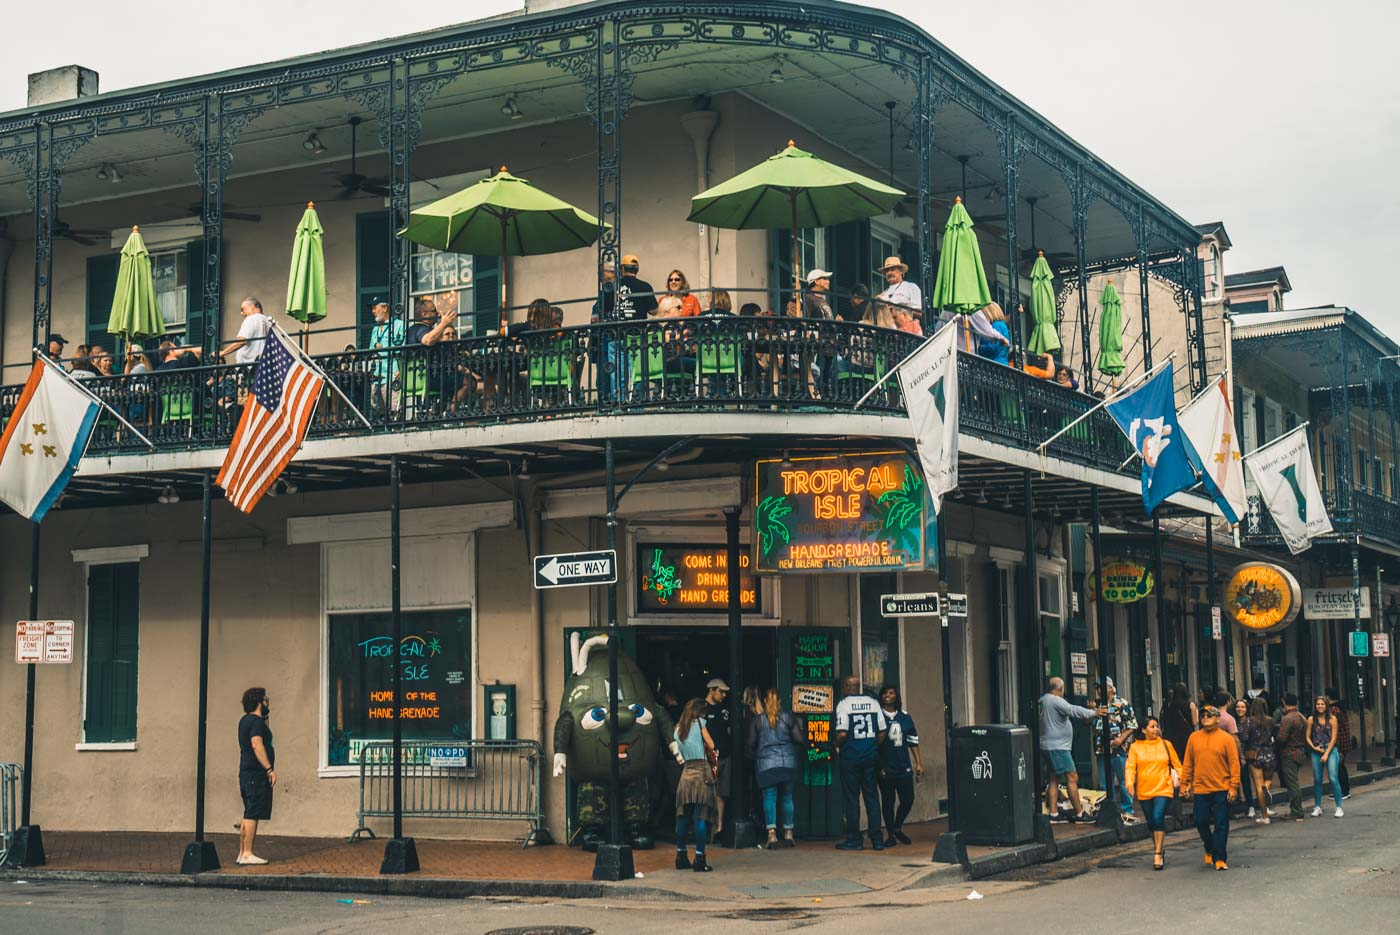 French Quarters, New Orleans